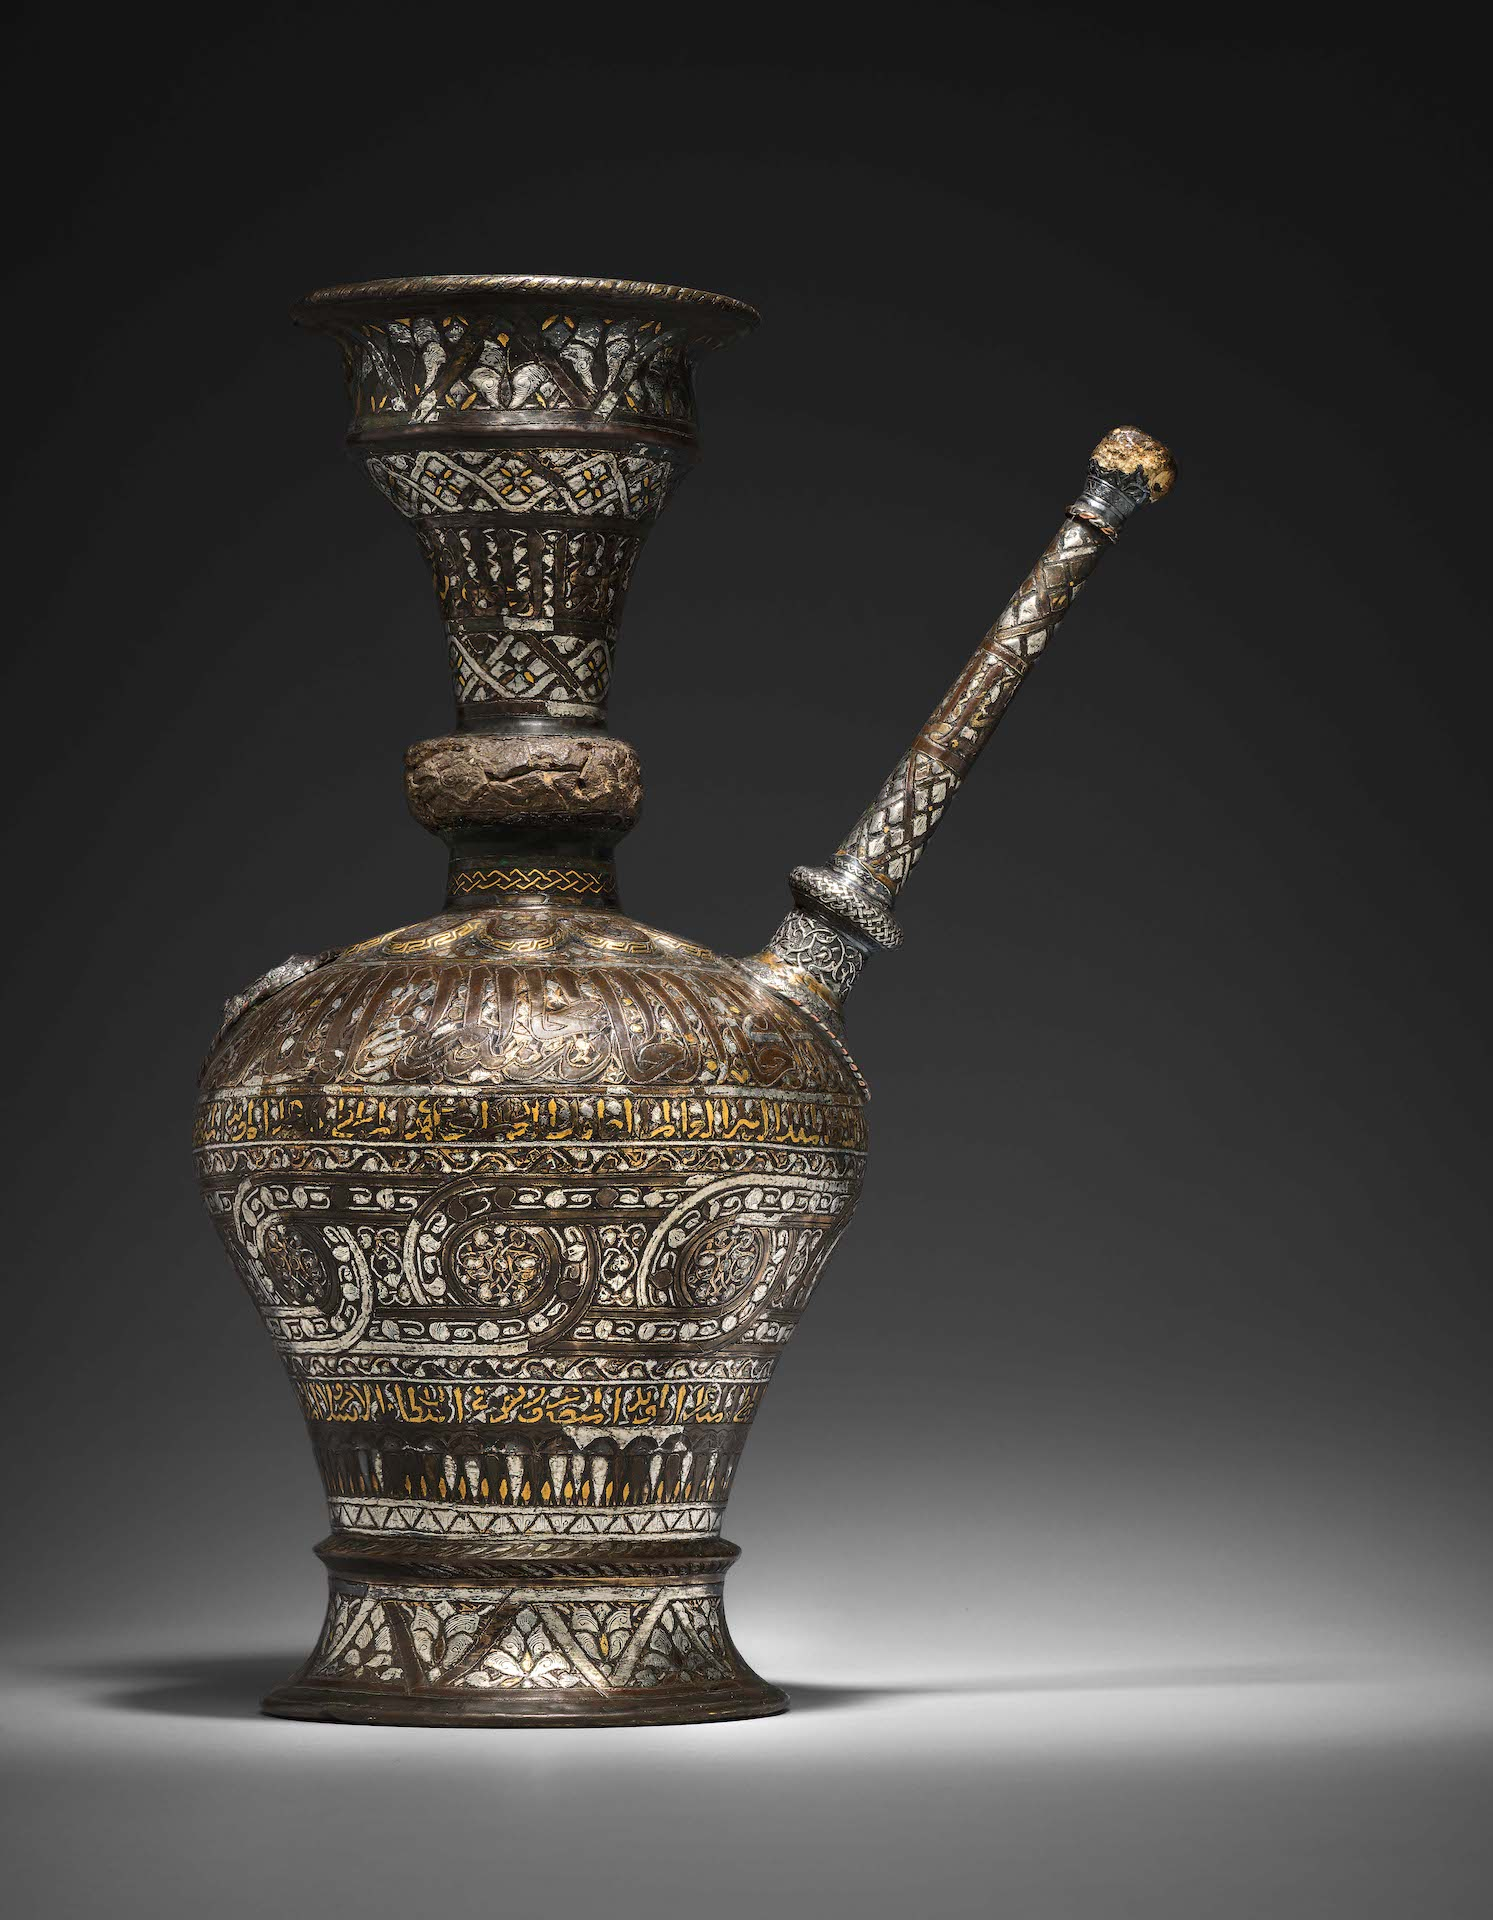 AN EXTREMELY RARE SILVER AND GOLD-INLAID MAMLUK EWER FROM THE PERIOD OF SULTAN AL- MALIK AL-NASIR MUHAMMAD IBN QALAWUN, 47.5cm height £200,000-300,000